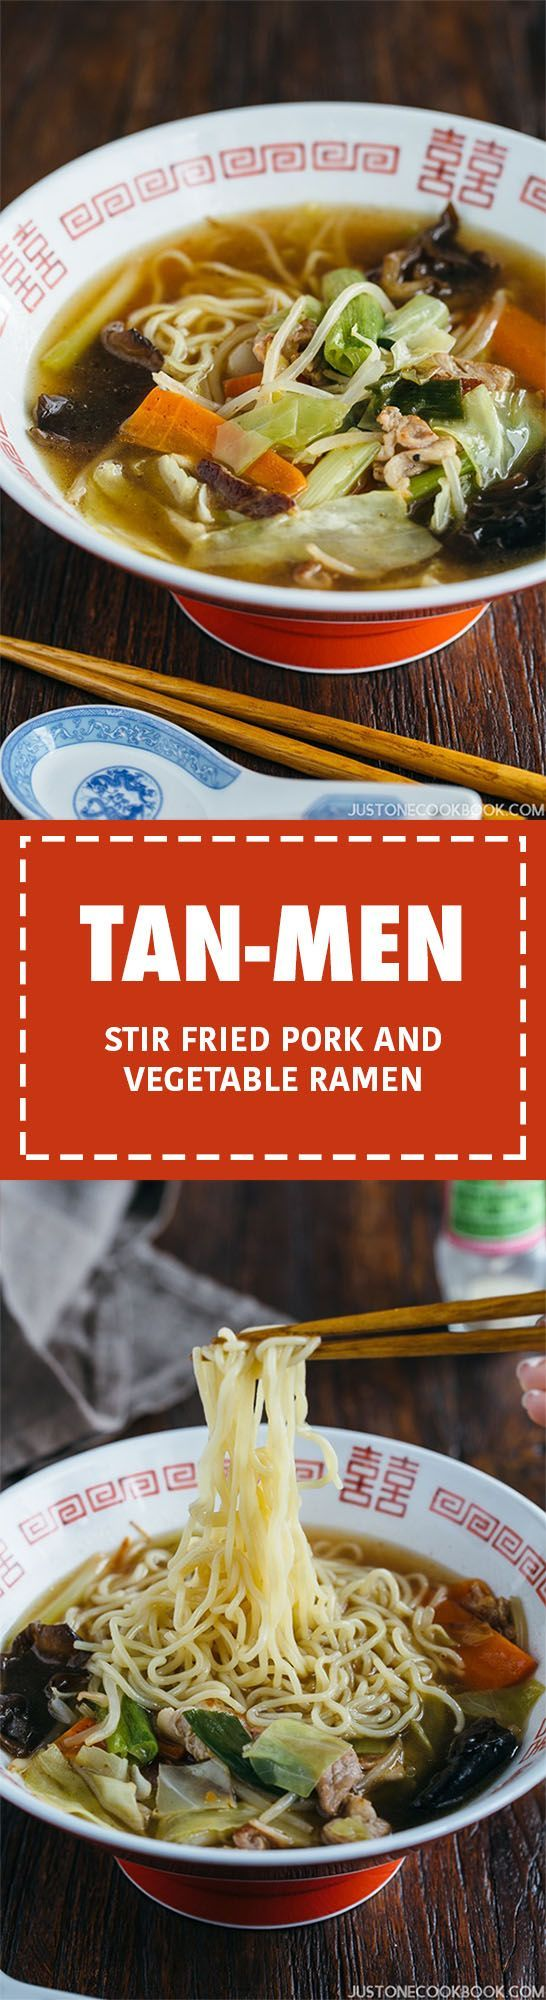 Tan-men (タンメン) is ramen soup noodle with stir fried pork and vegetables, and it's one of the quickest ramen you can make easily at home!